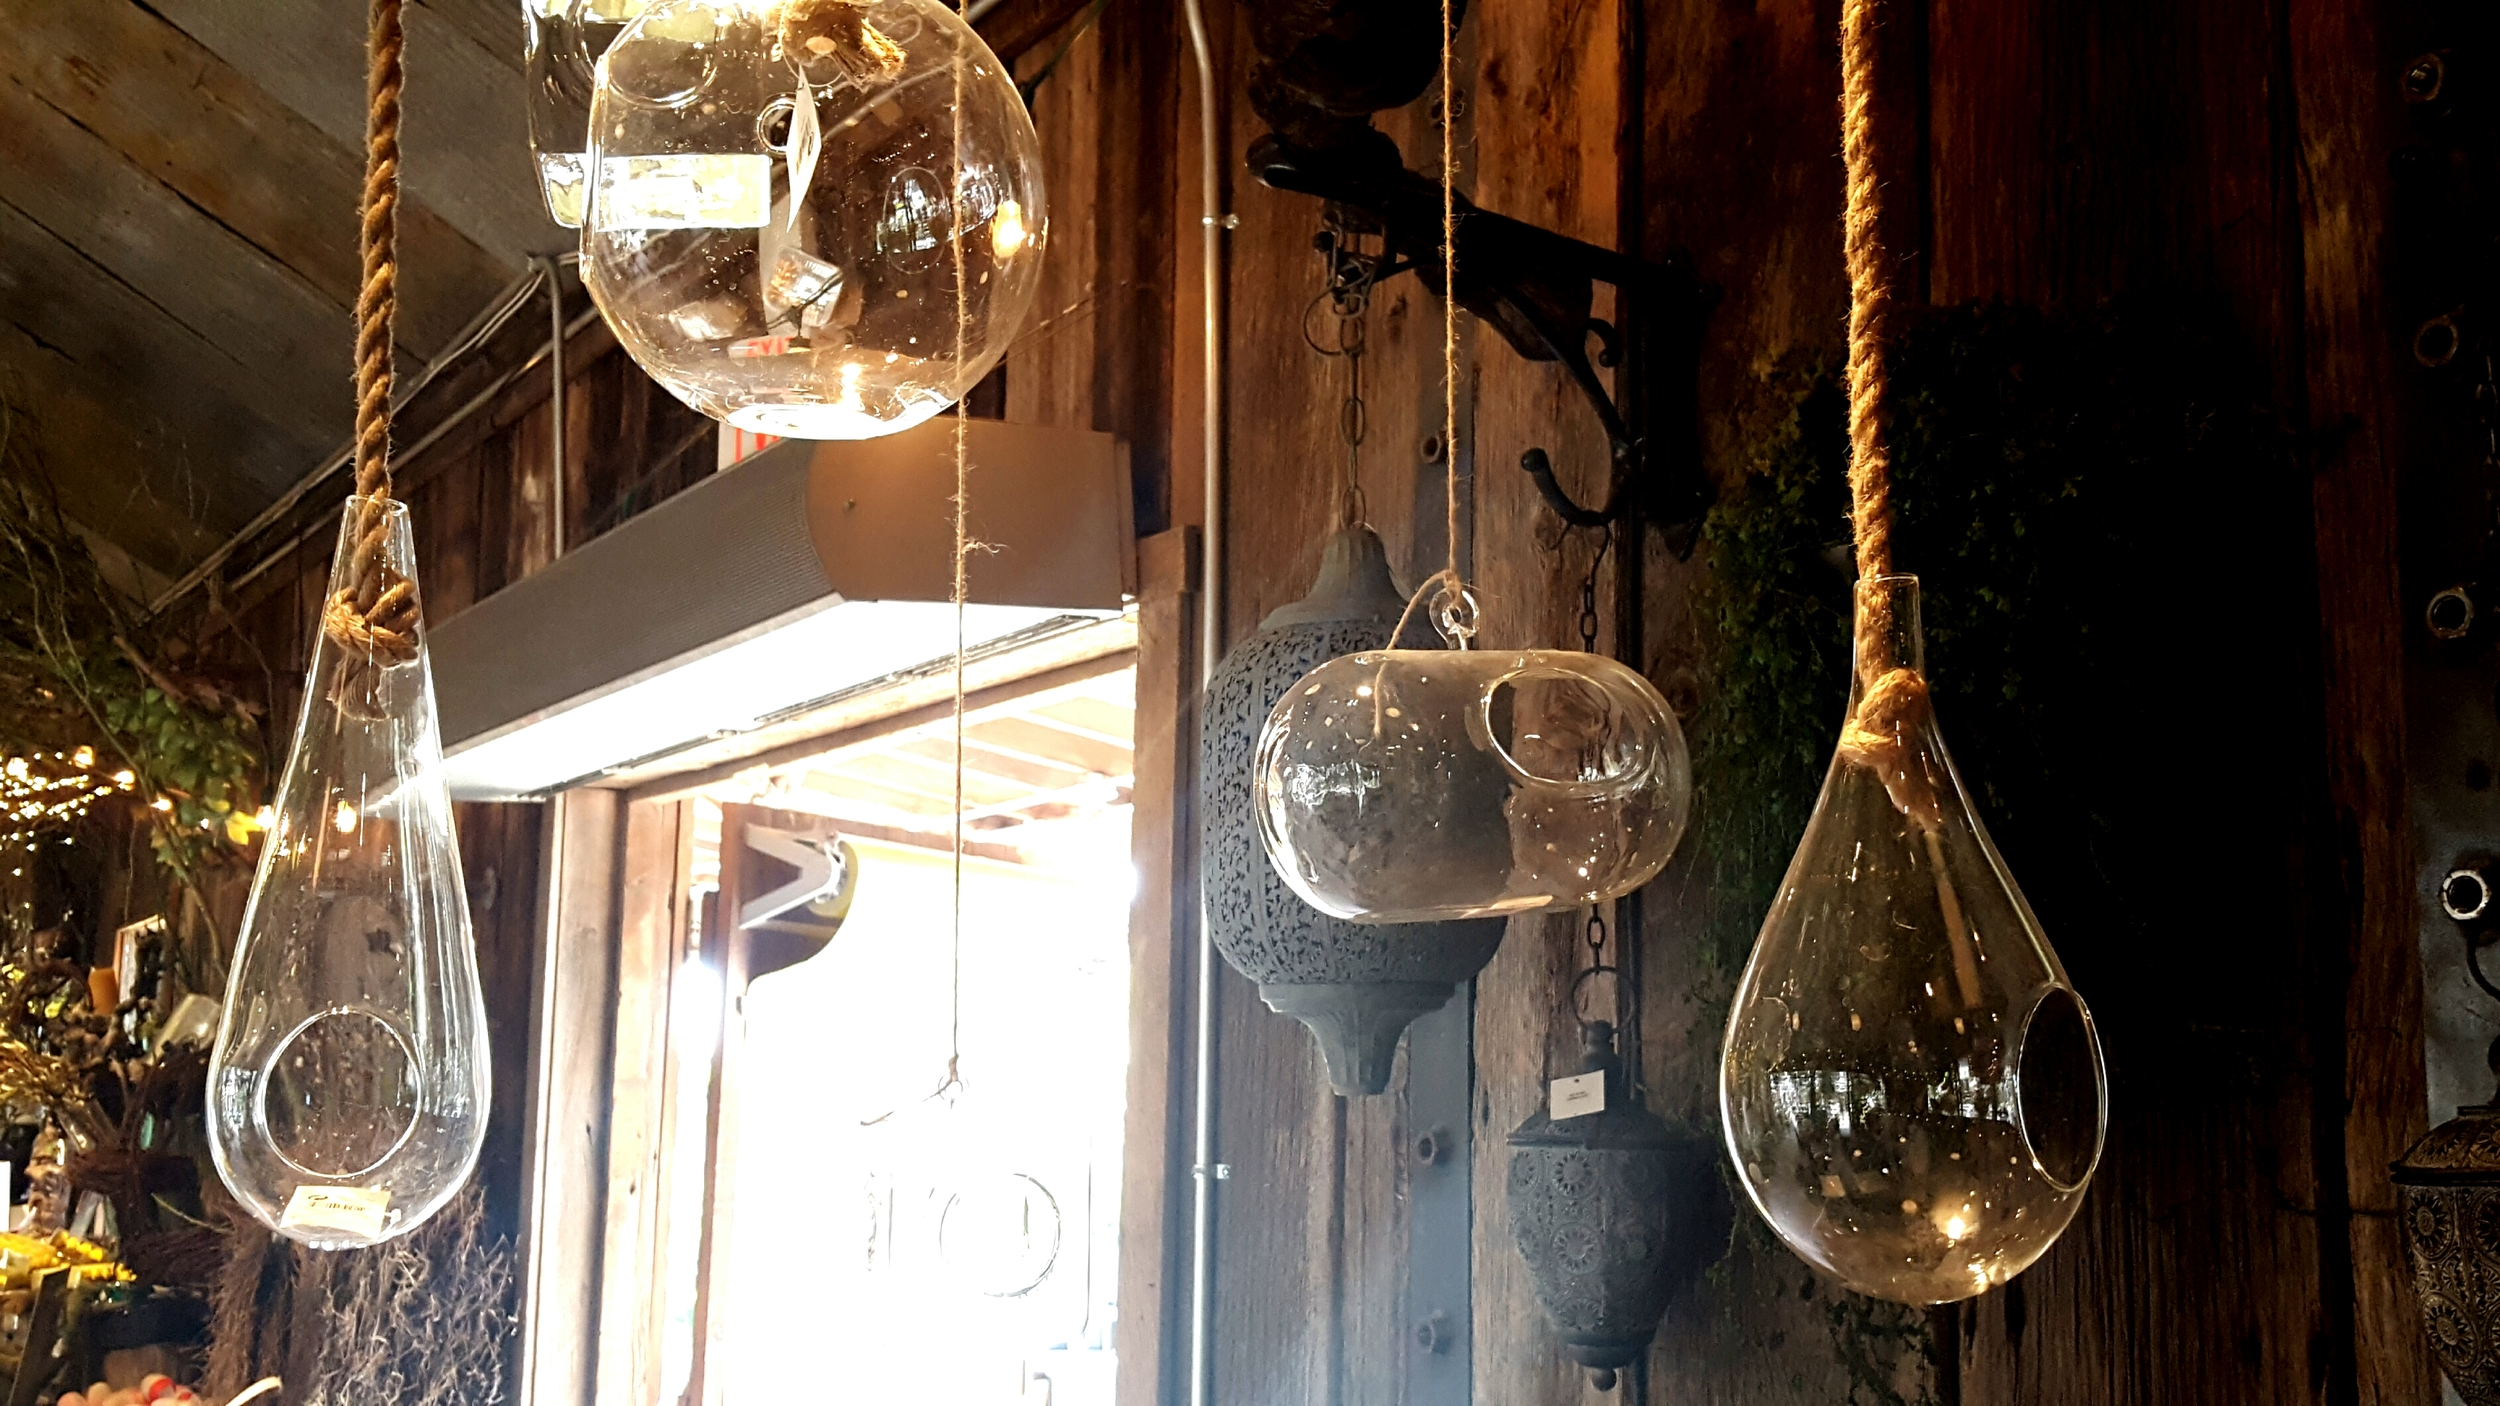 Building terrariums is just one of Charlene's gardening hobbies. This would look great suspended from the ceiling with rope, ribbon, or chains for a more industrial feel.